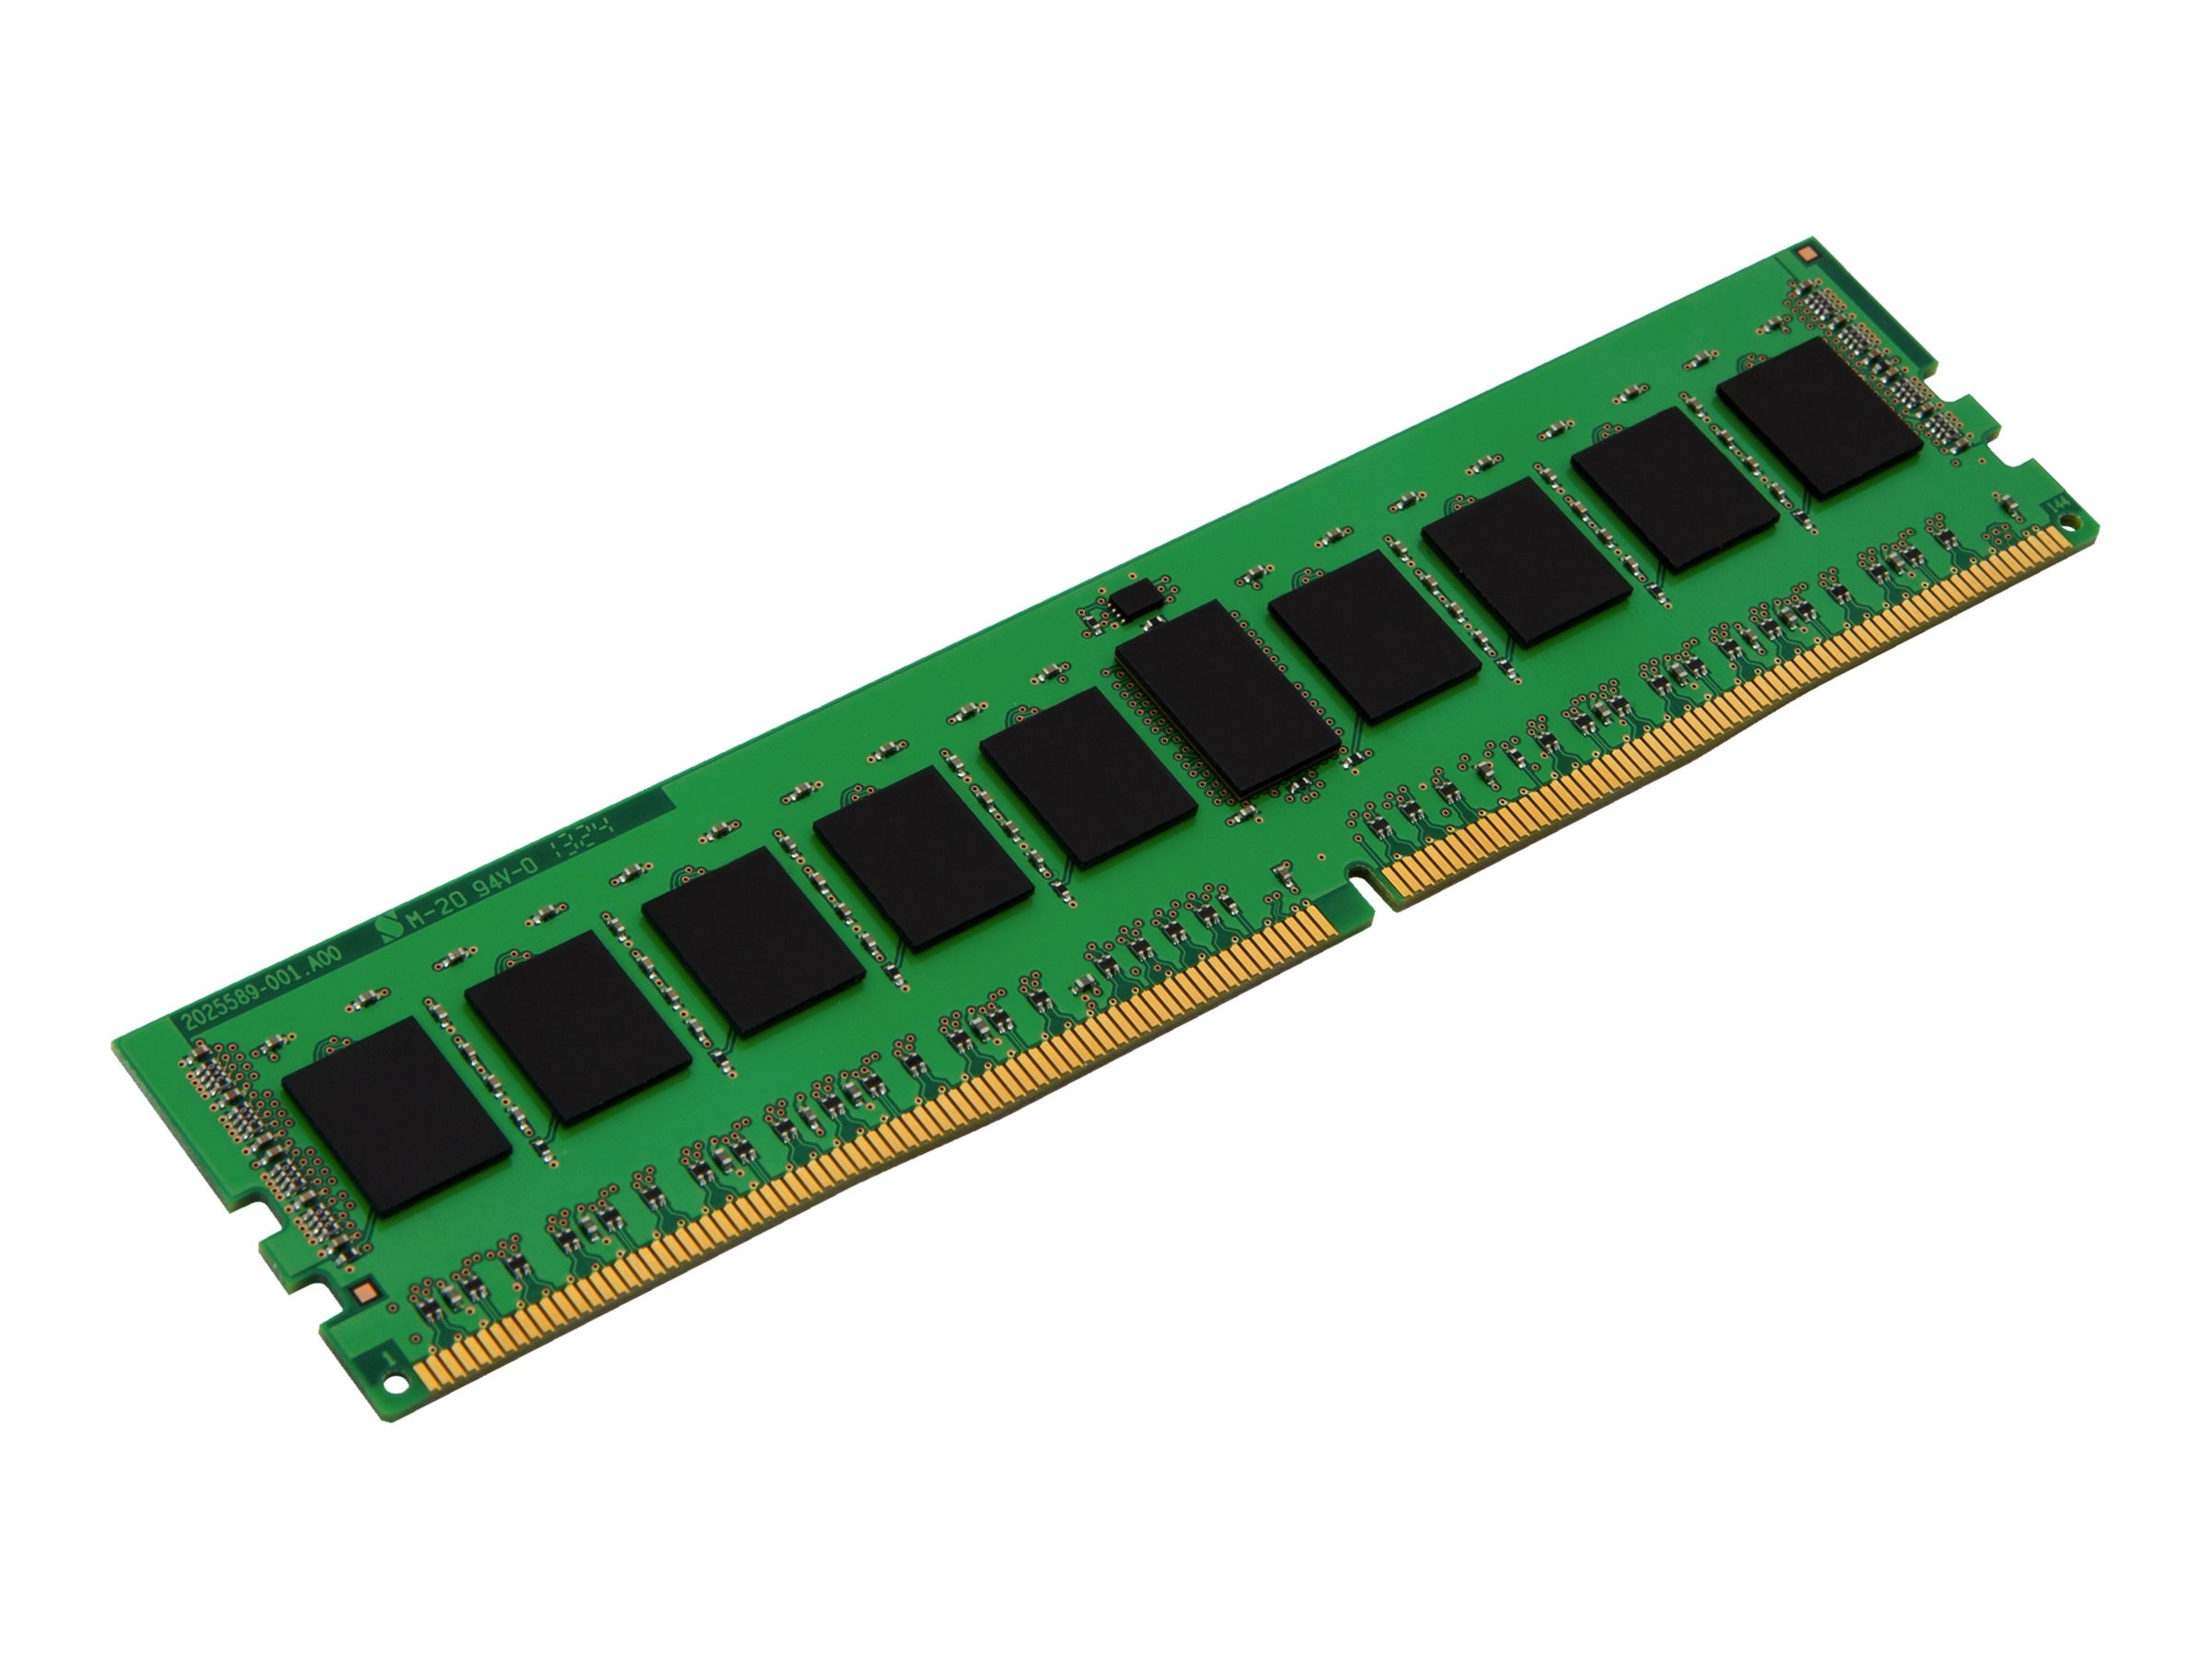 Kingston 8GB PC4-17000 288-pin DDR4 SDRAM RDIMM for Select Models